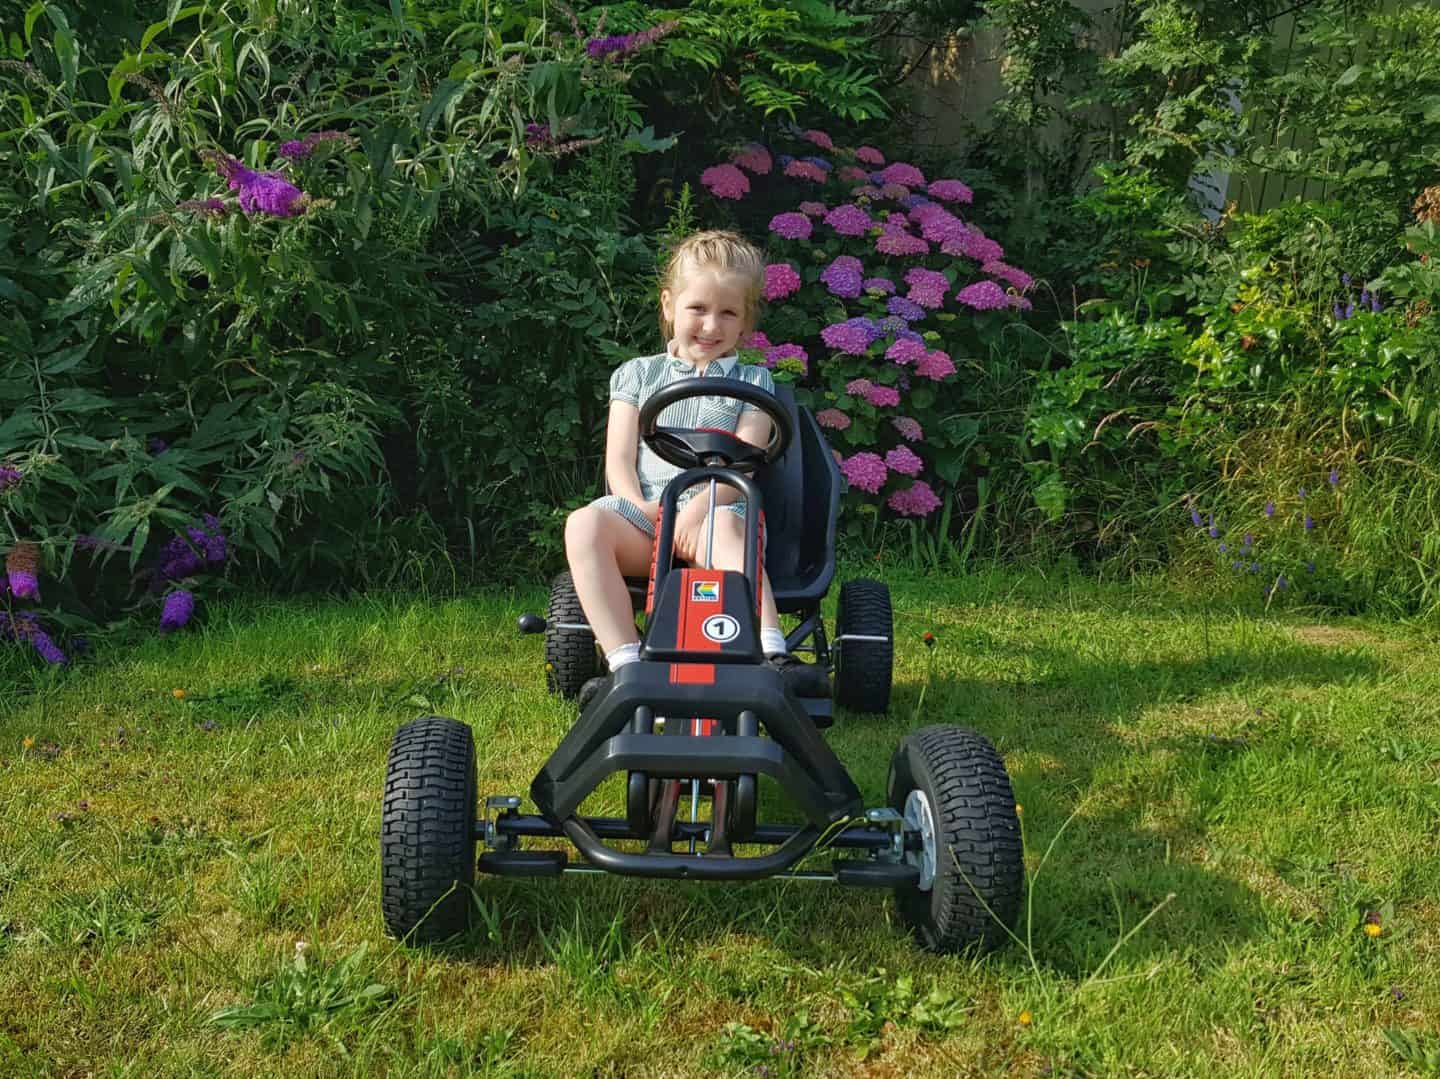 Girl riding Kettler Barcelona Air Go Kart on grass with flower bush behind